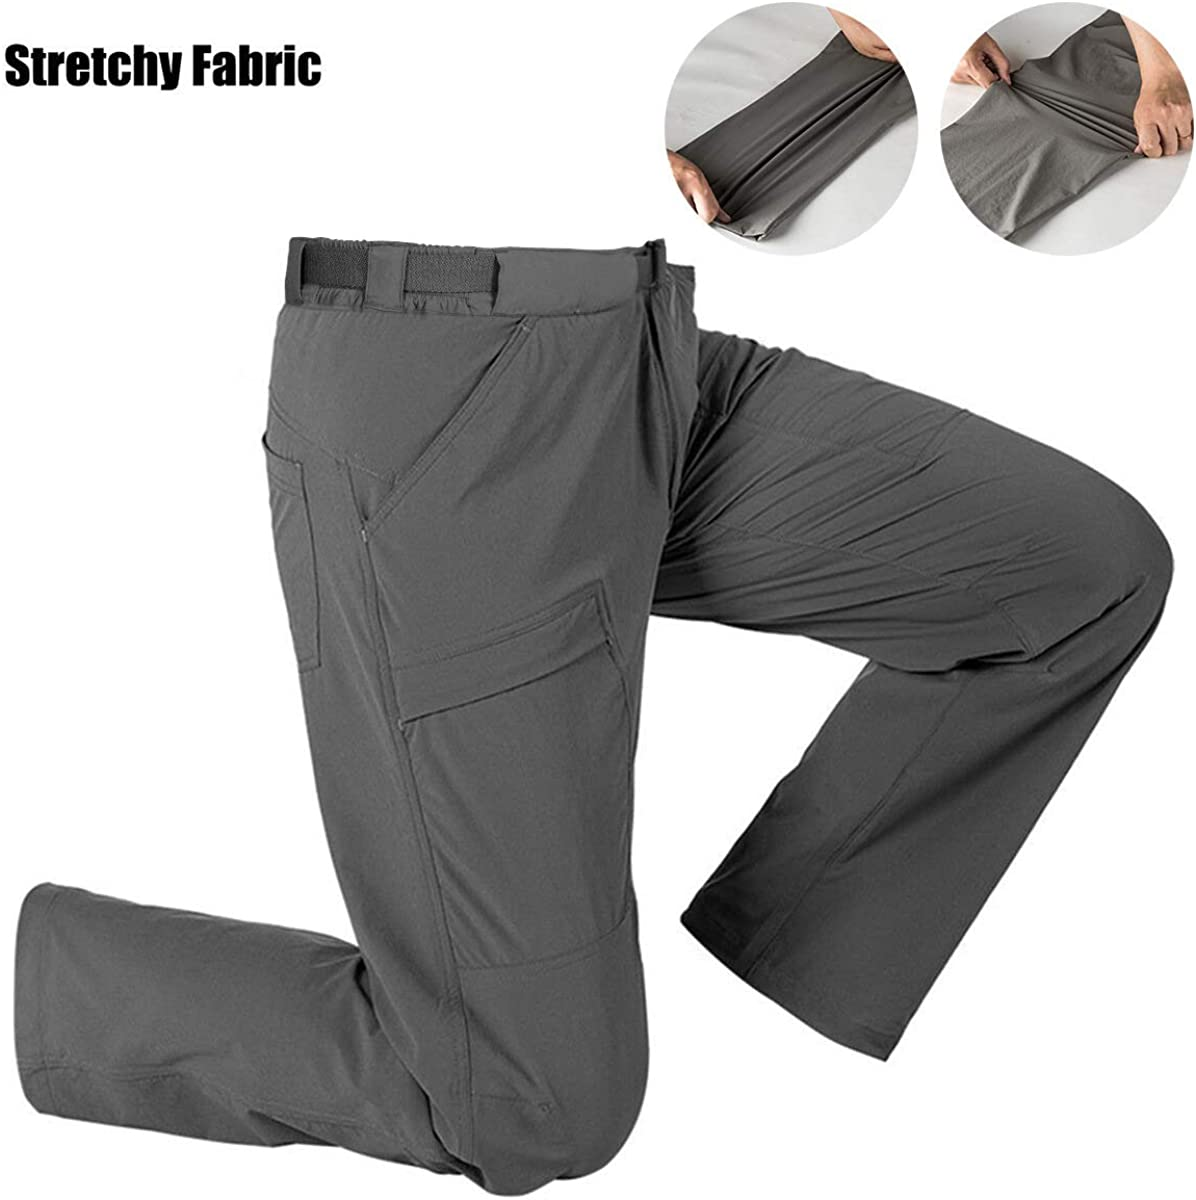 Water Resistant Cargo Pants FREE SOLDIER Womens Hiking Pants Outdoor Quick Dry Lightweight Stretch Pants UPF 50